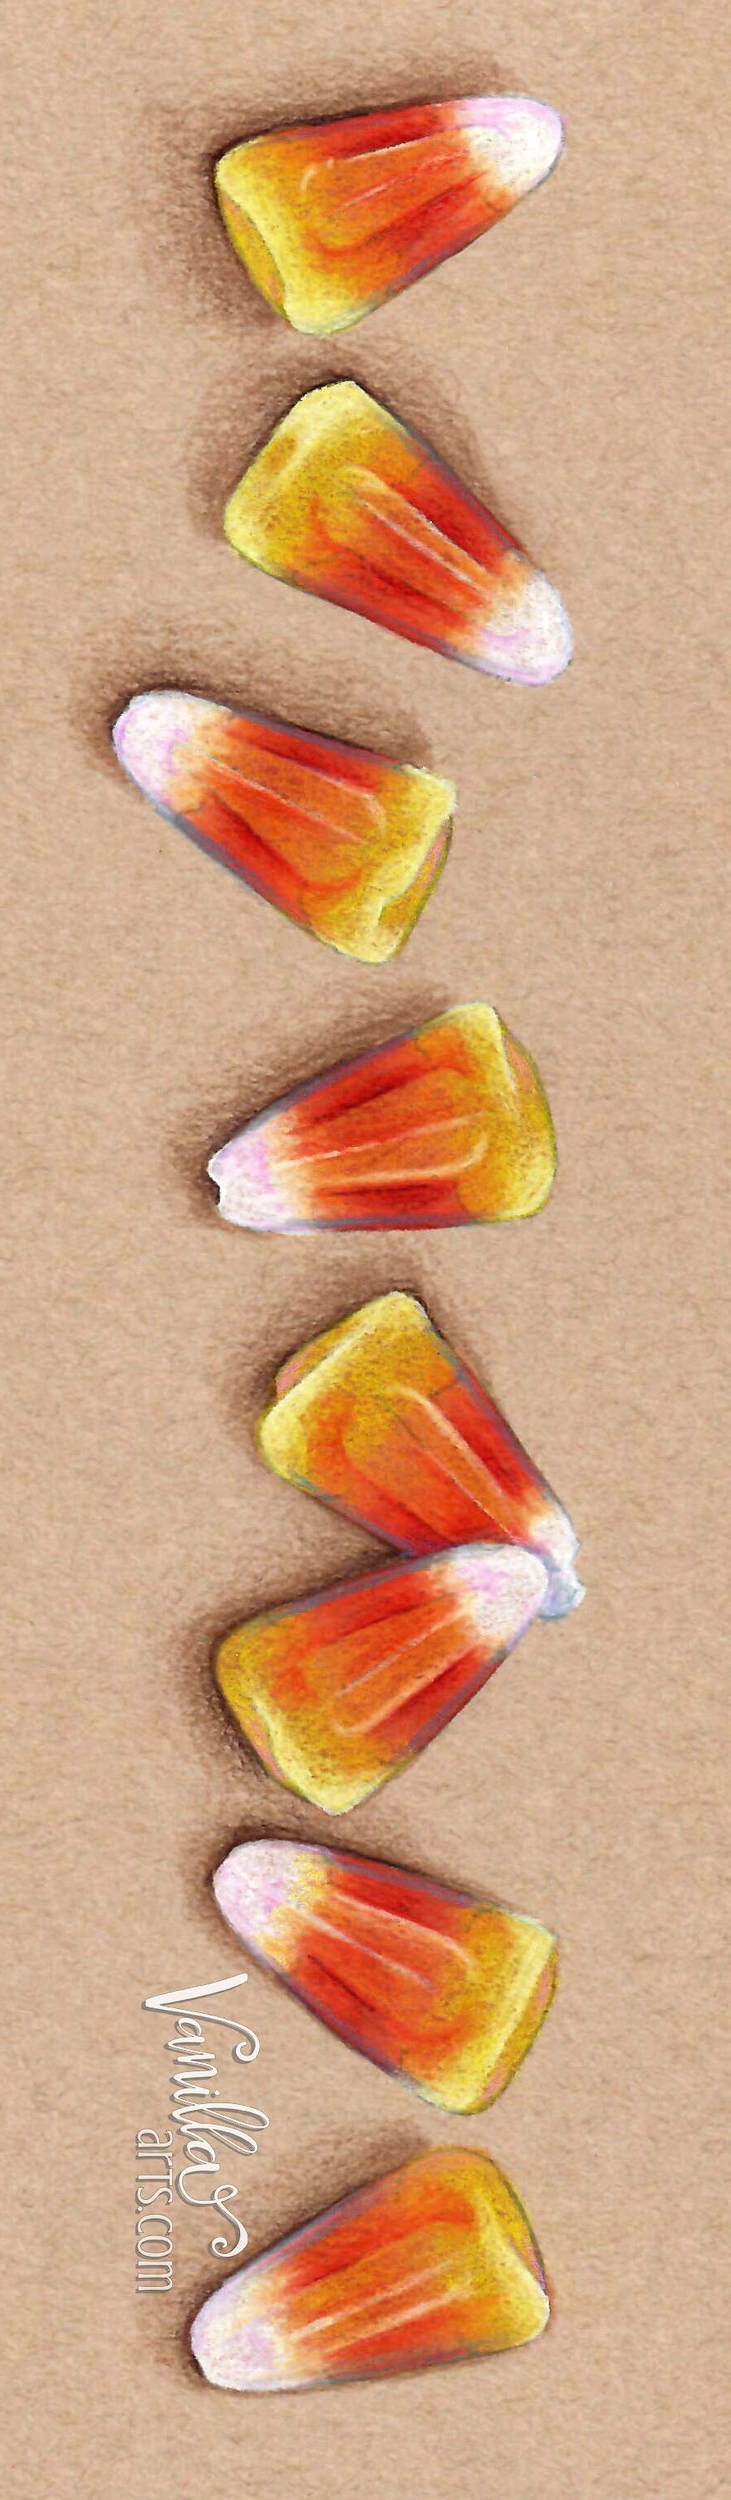 """""""Candy Corn"""", an introduction to coloring vibrant colors with realism on colored papers and cardstocks.   VanillaArts.com"""